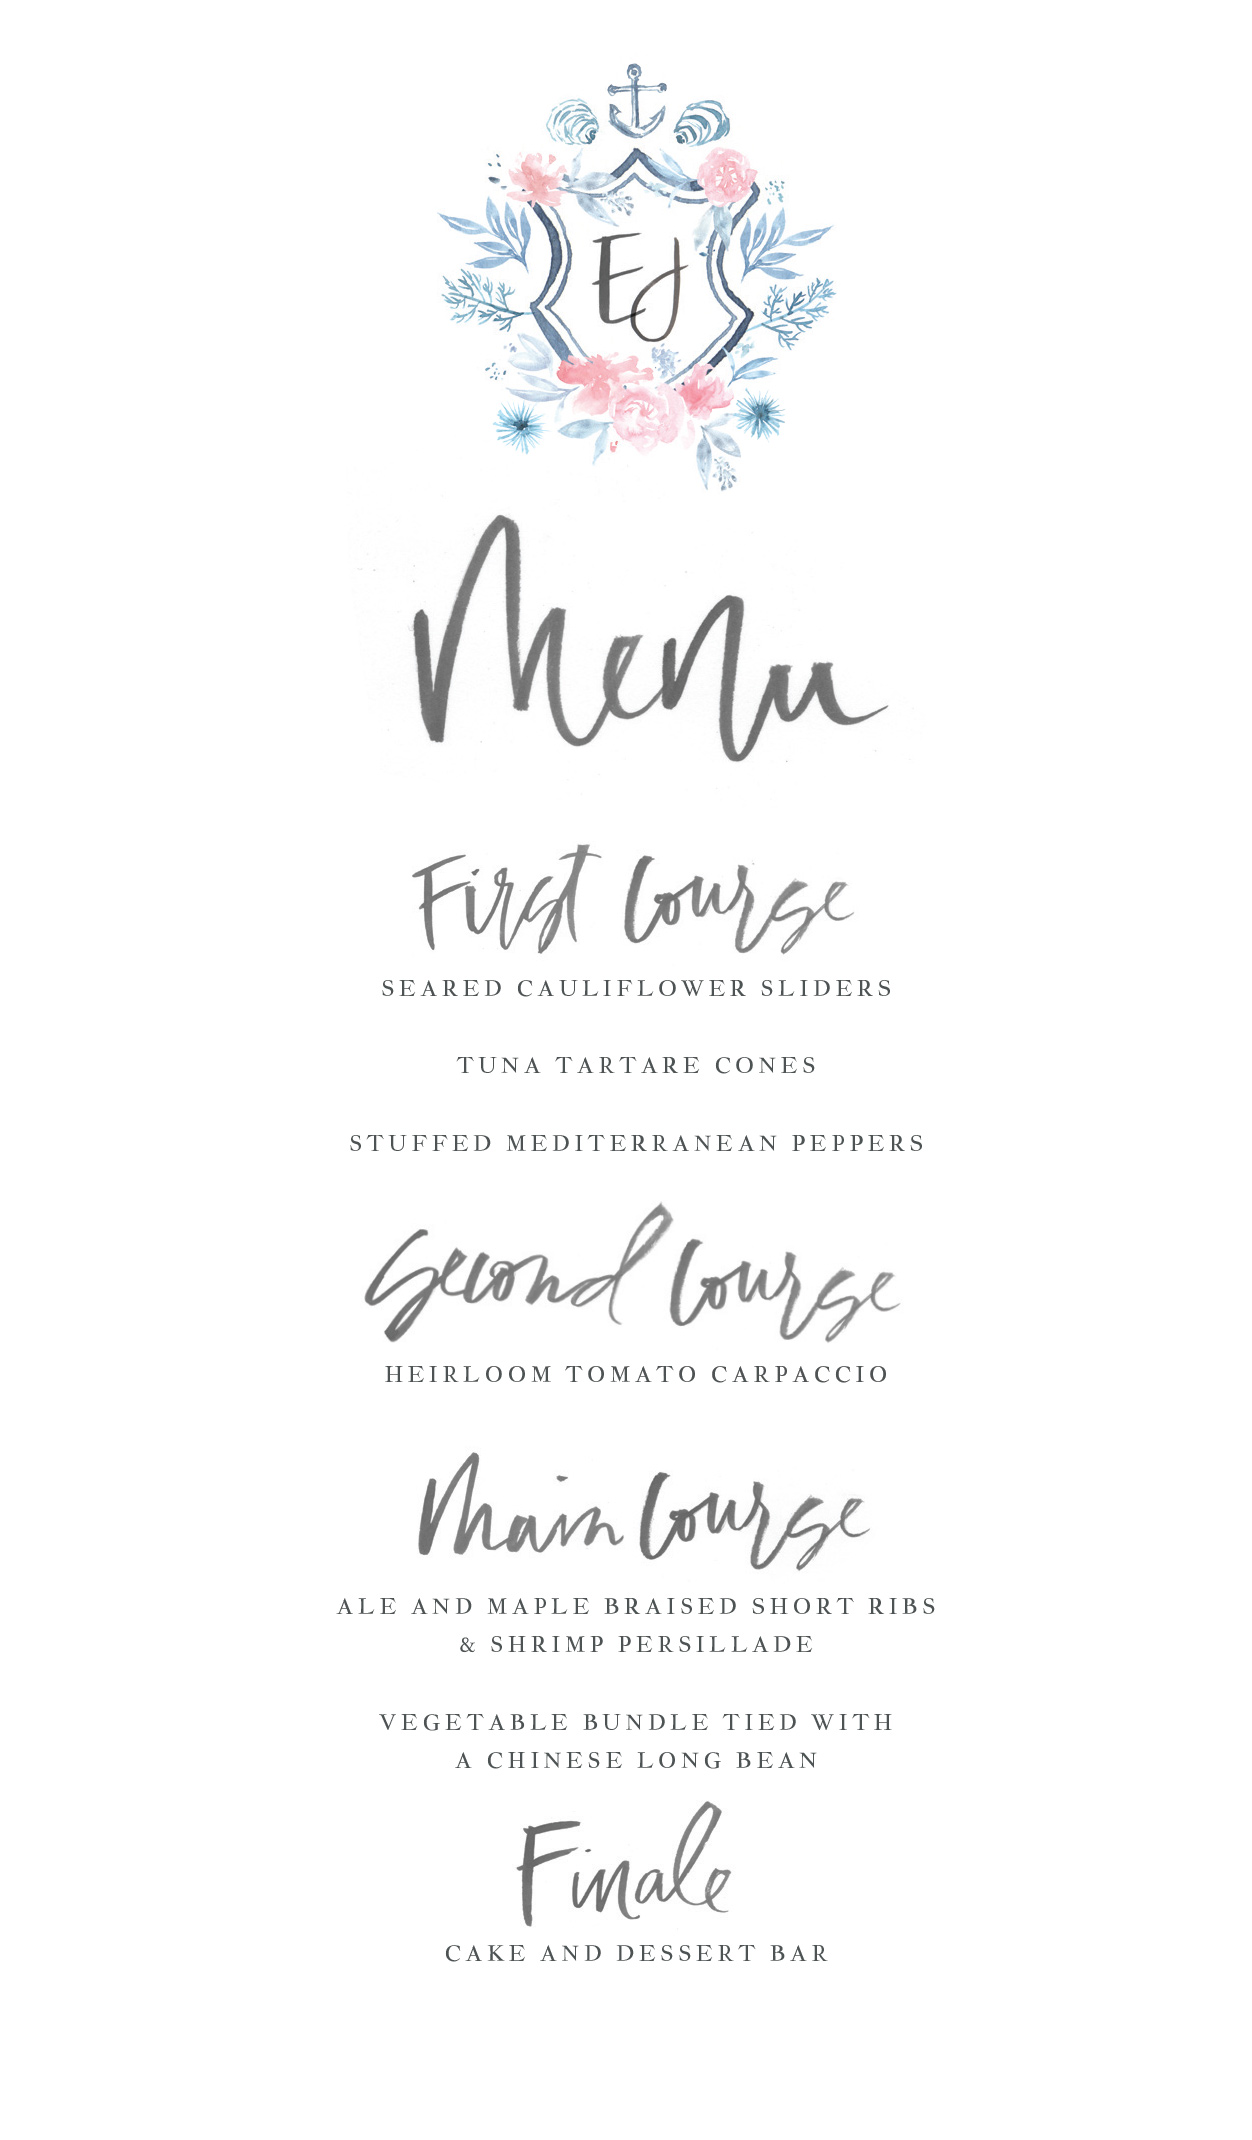 The menu is easy to overlook, but it could be the star of your table setting.